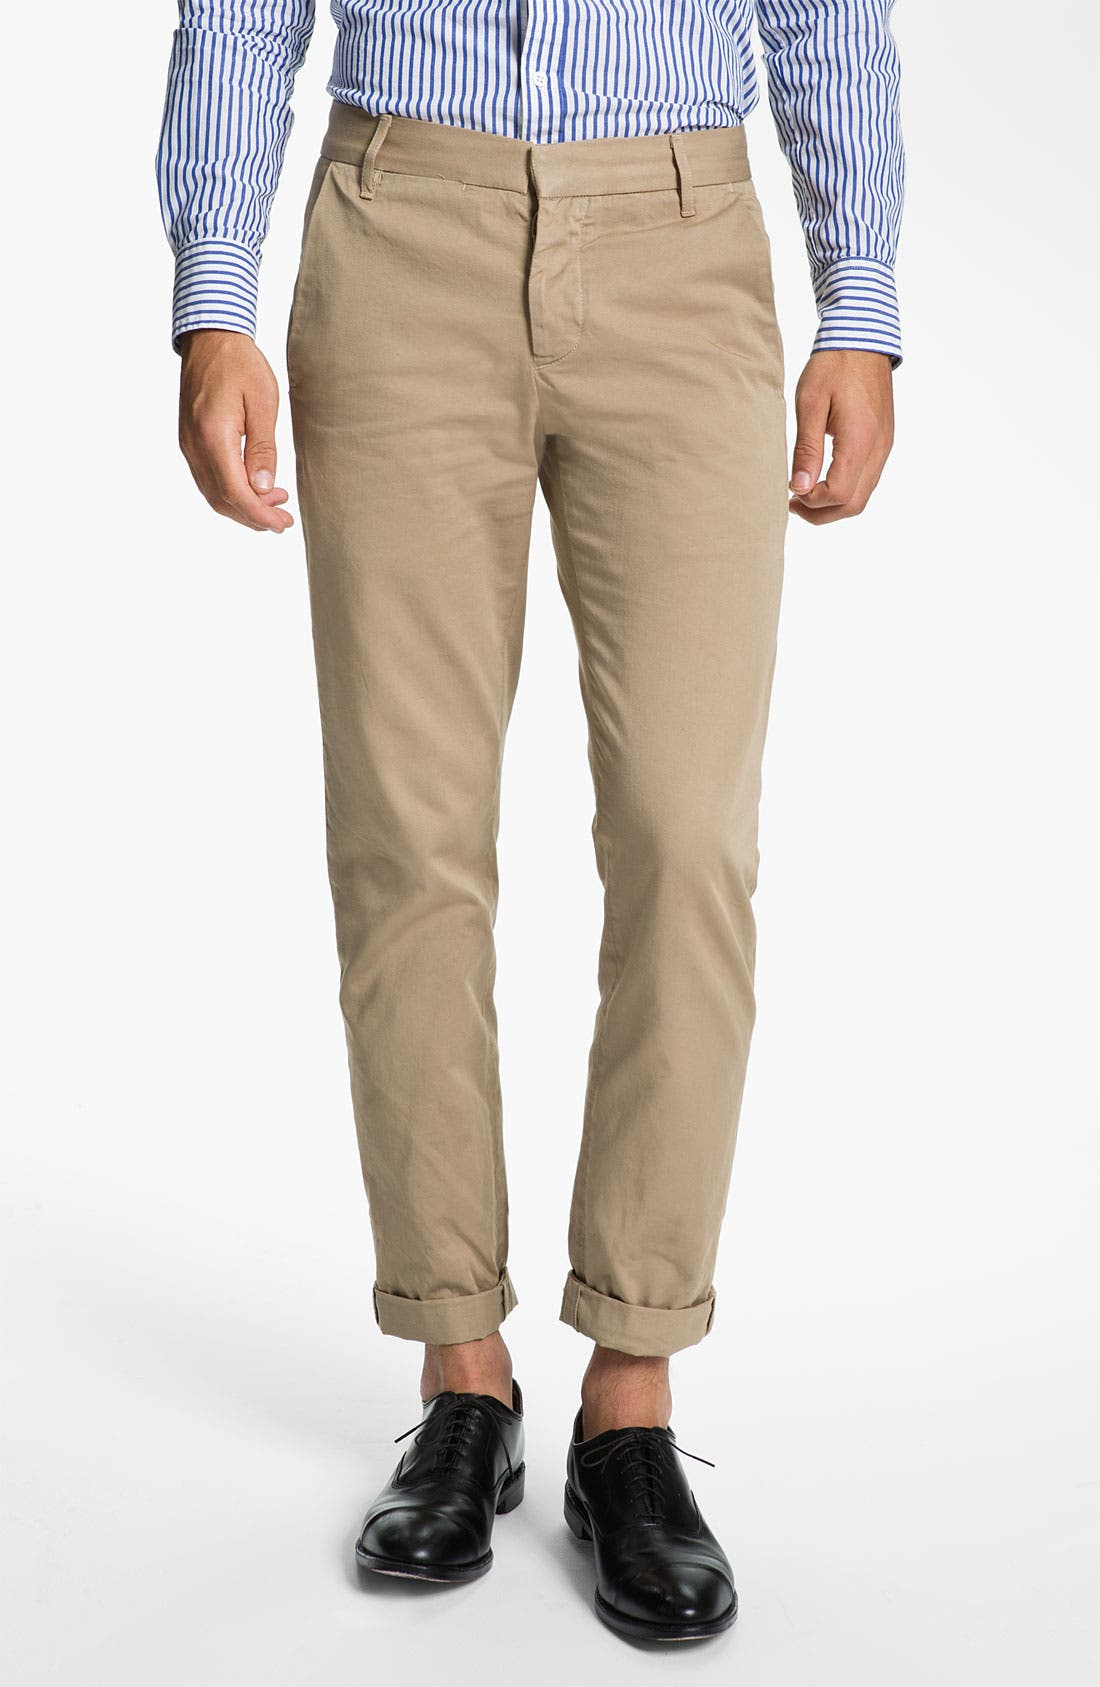 Alternate Image 1 Selected - Band of Outsiders Slim Fit Twill Cotton Chinos